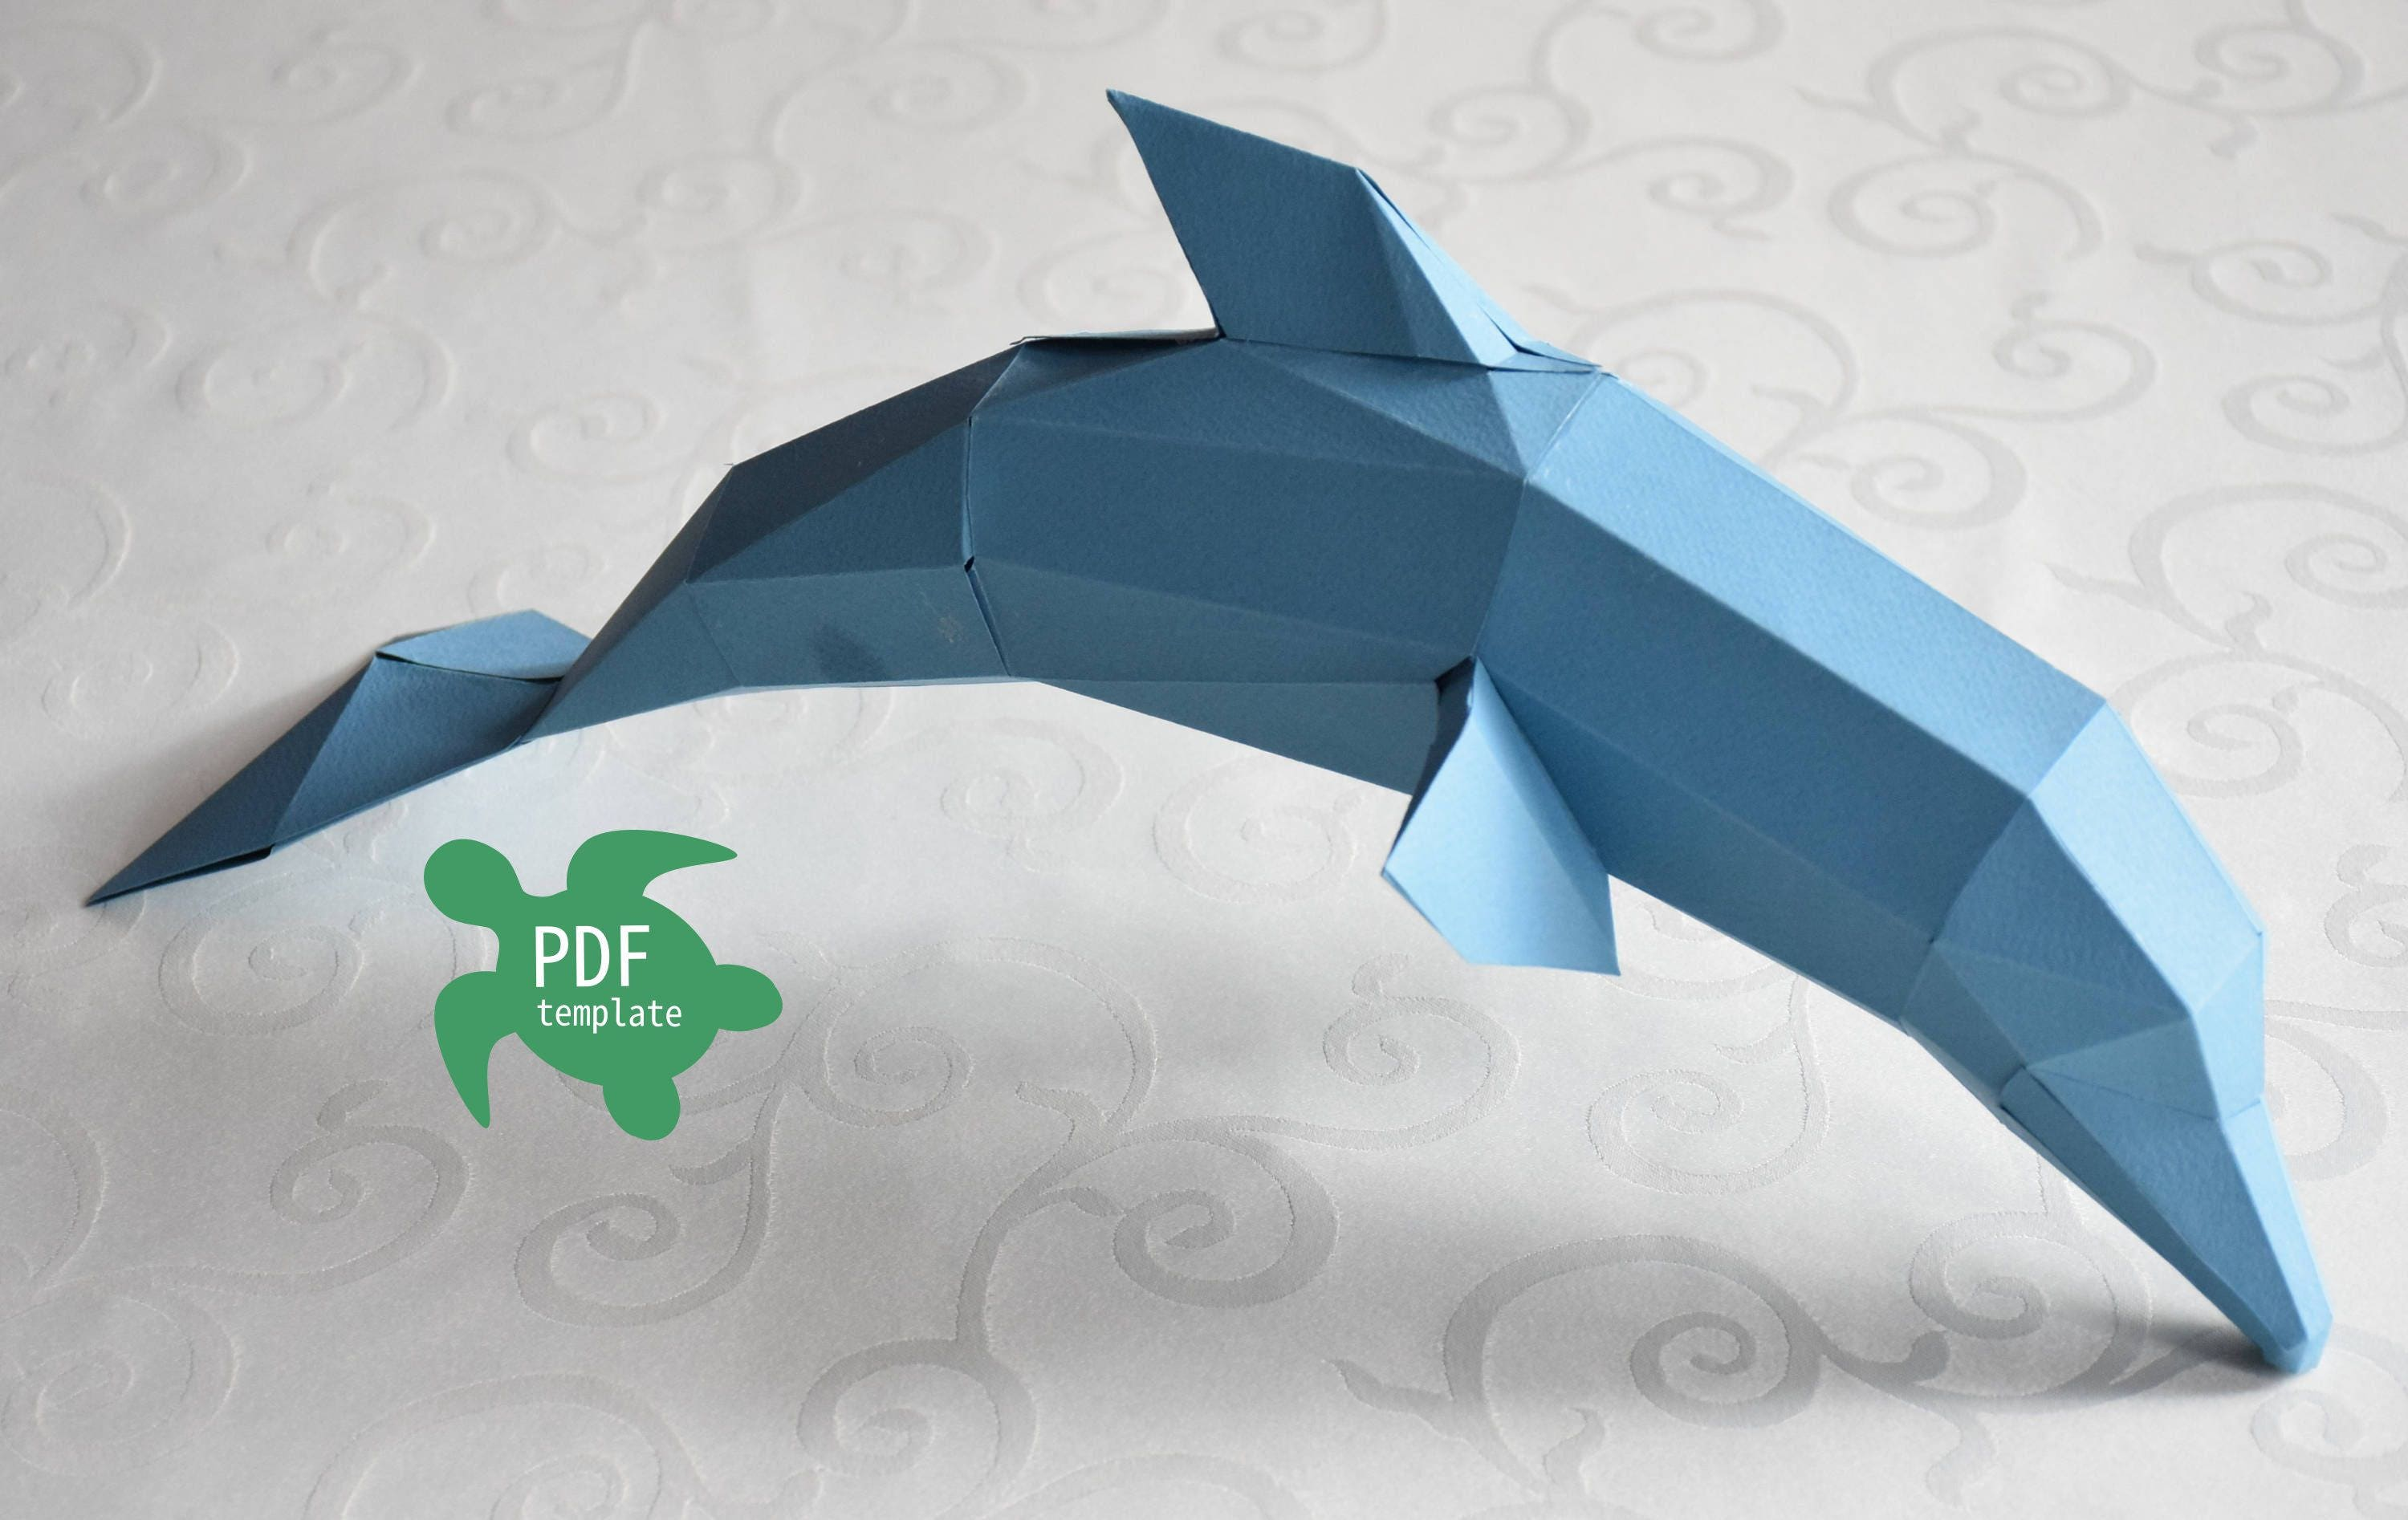 Papercraft dolphin PDF template | Etsy